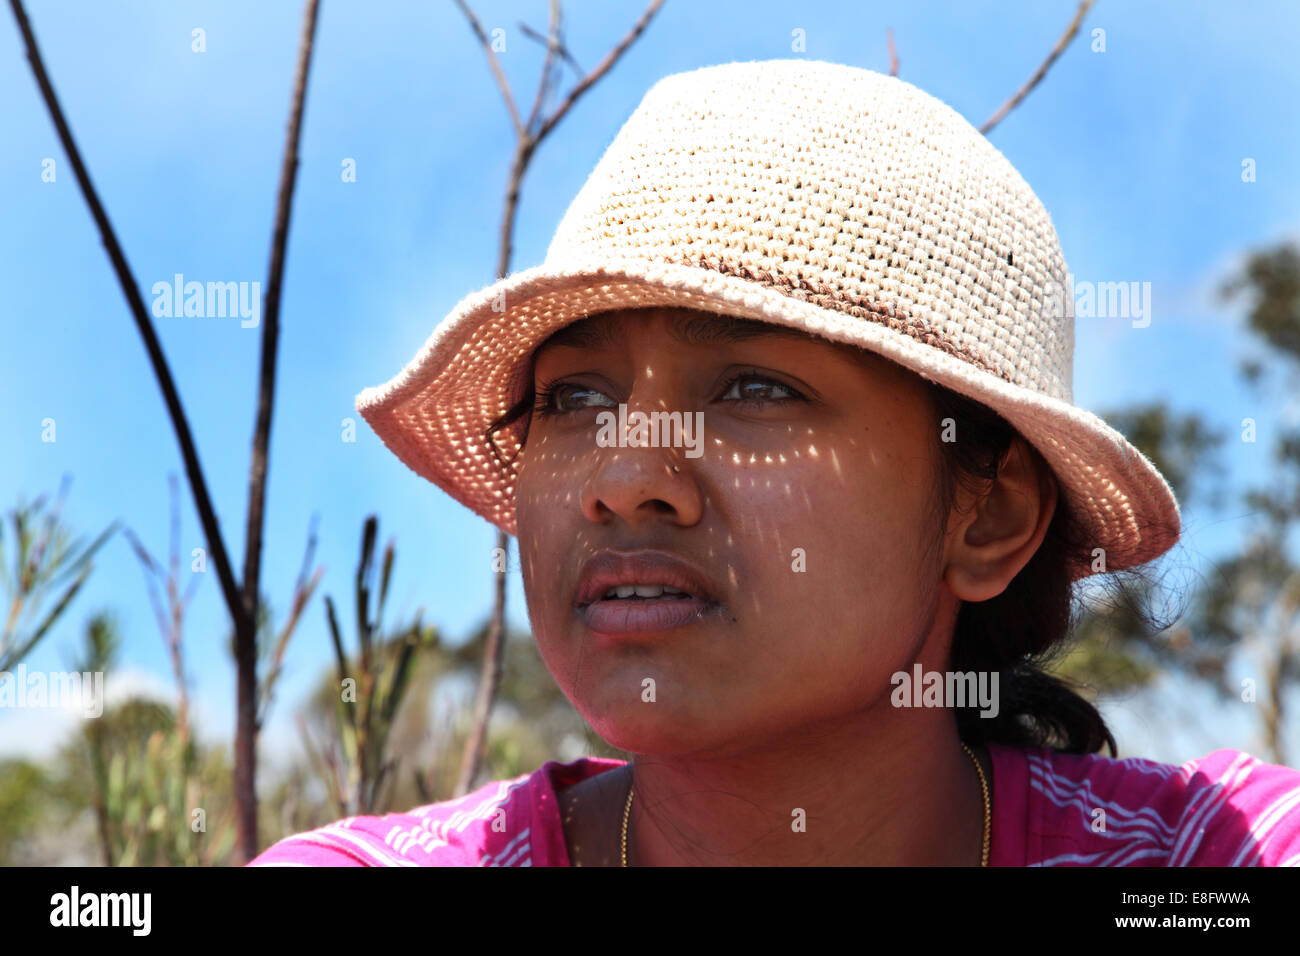 Australia, Nuovo Galles del Sud, Sydney, Portrait of young woman in knit hat - Stock Image